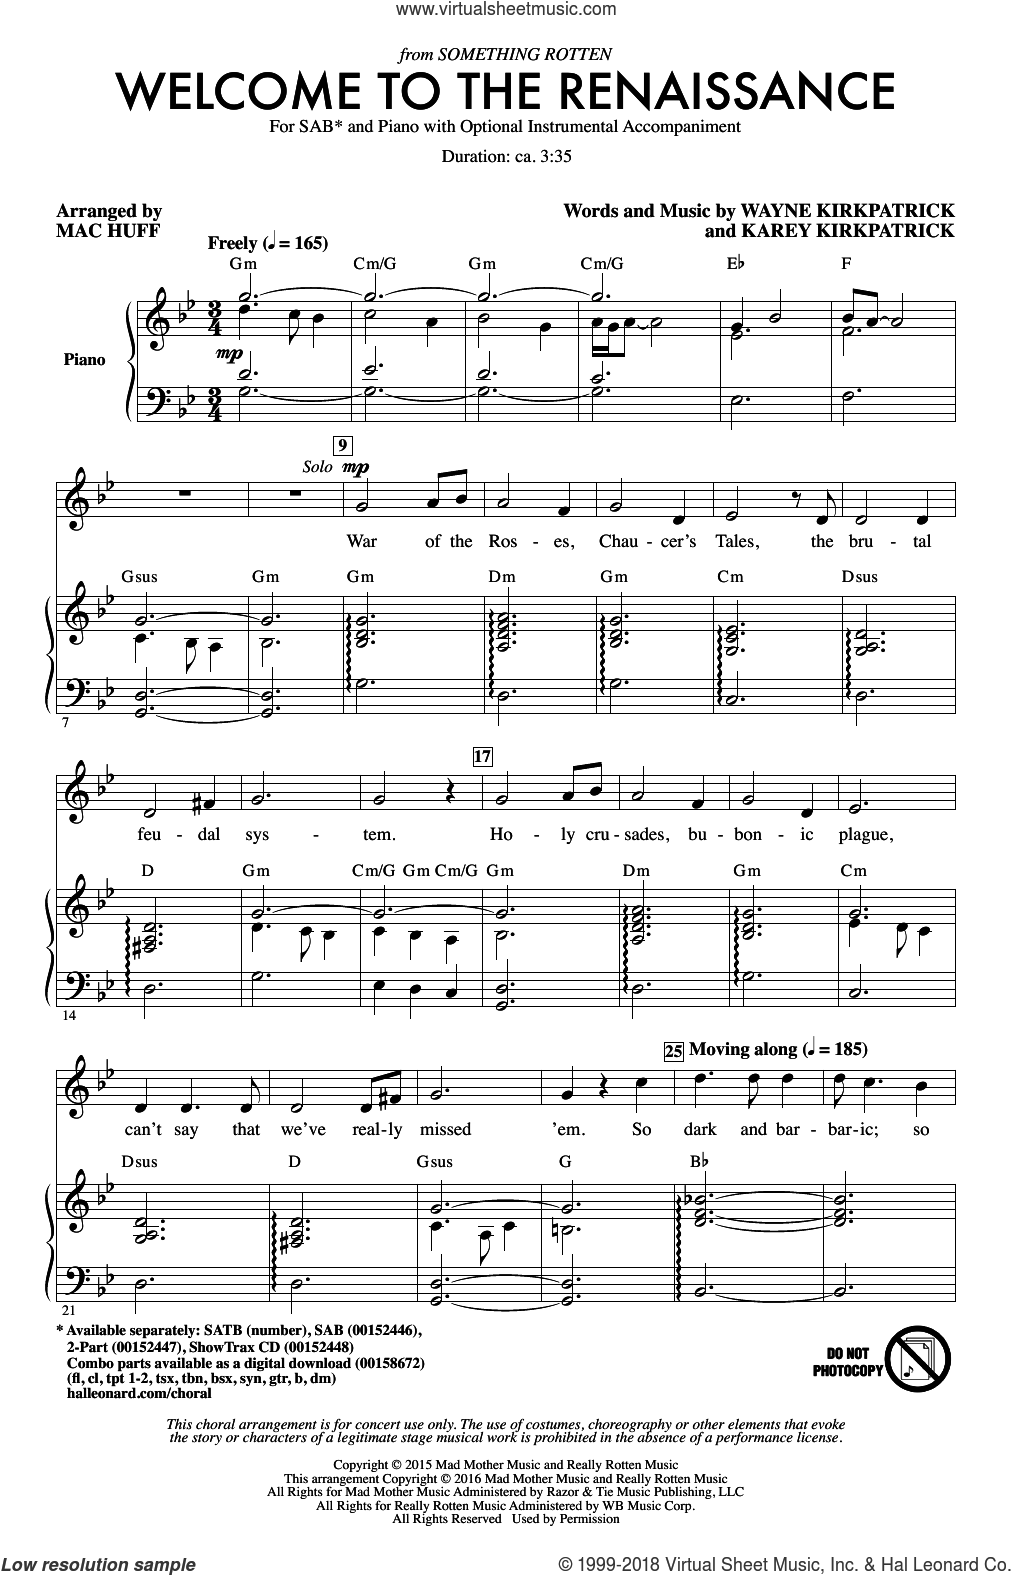 Welcome To The Renaissance sheet music for choir (SAB: soprano, alto, bass) by Wayne Kirkpatrick, Mac Huff and Karey Kirkpatrick, intermediate skill level